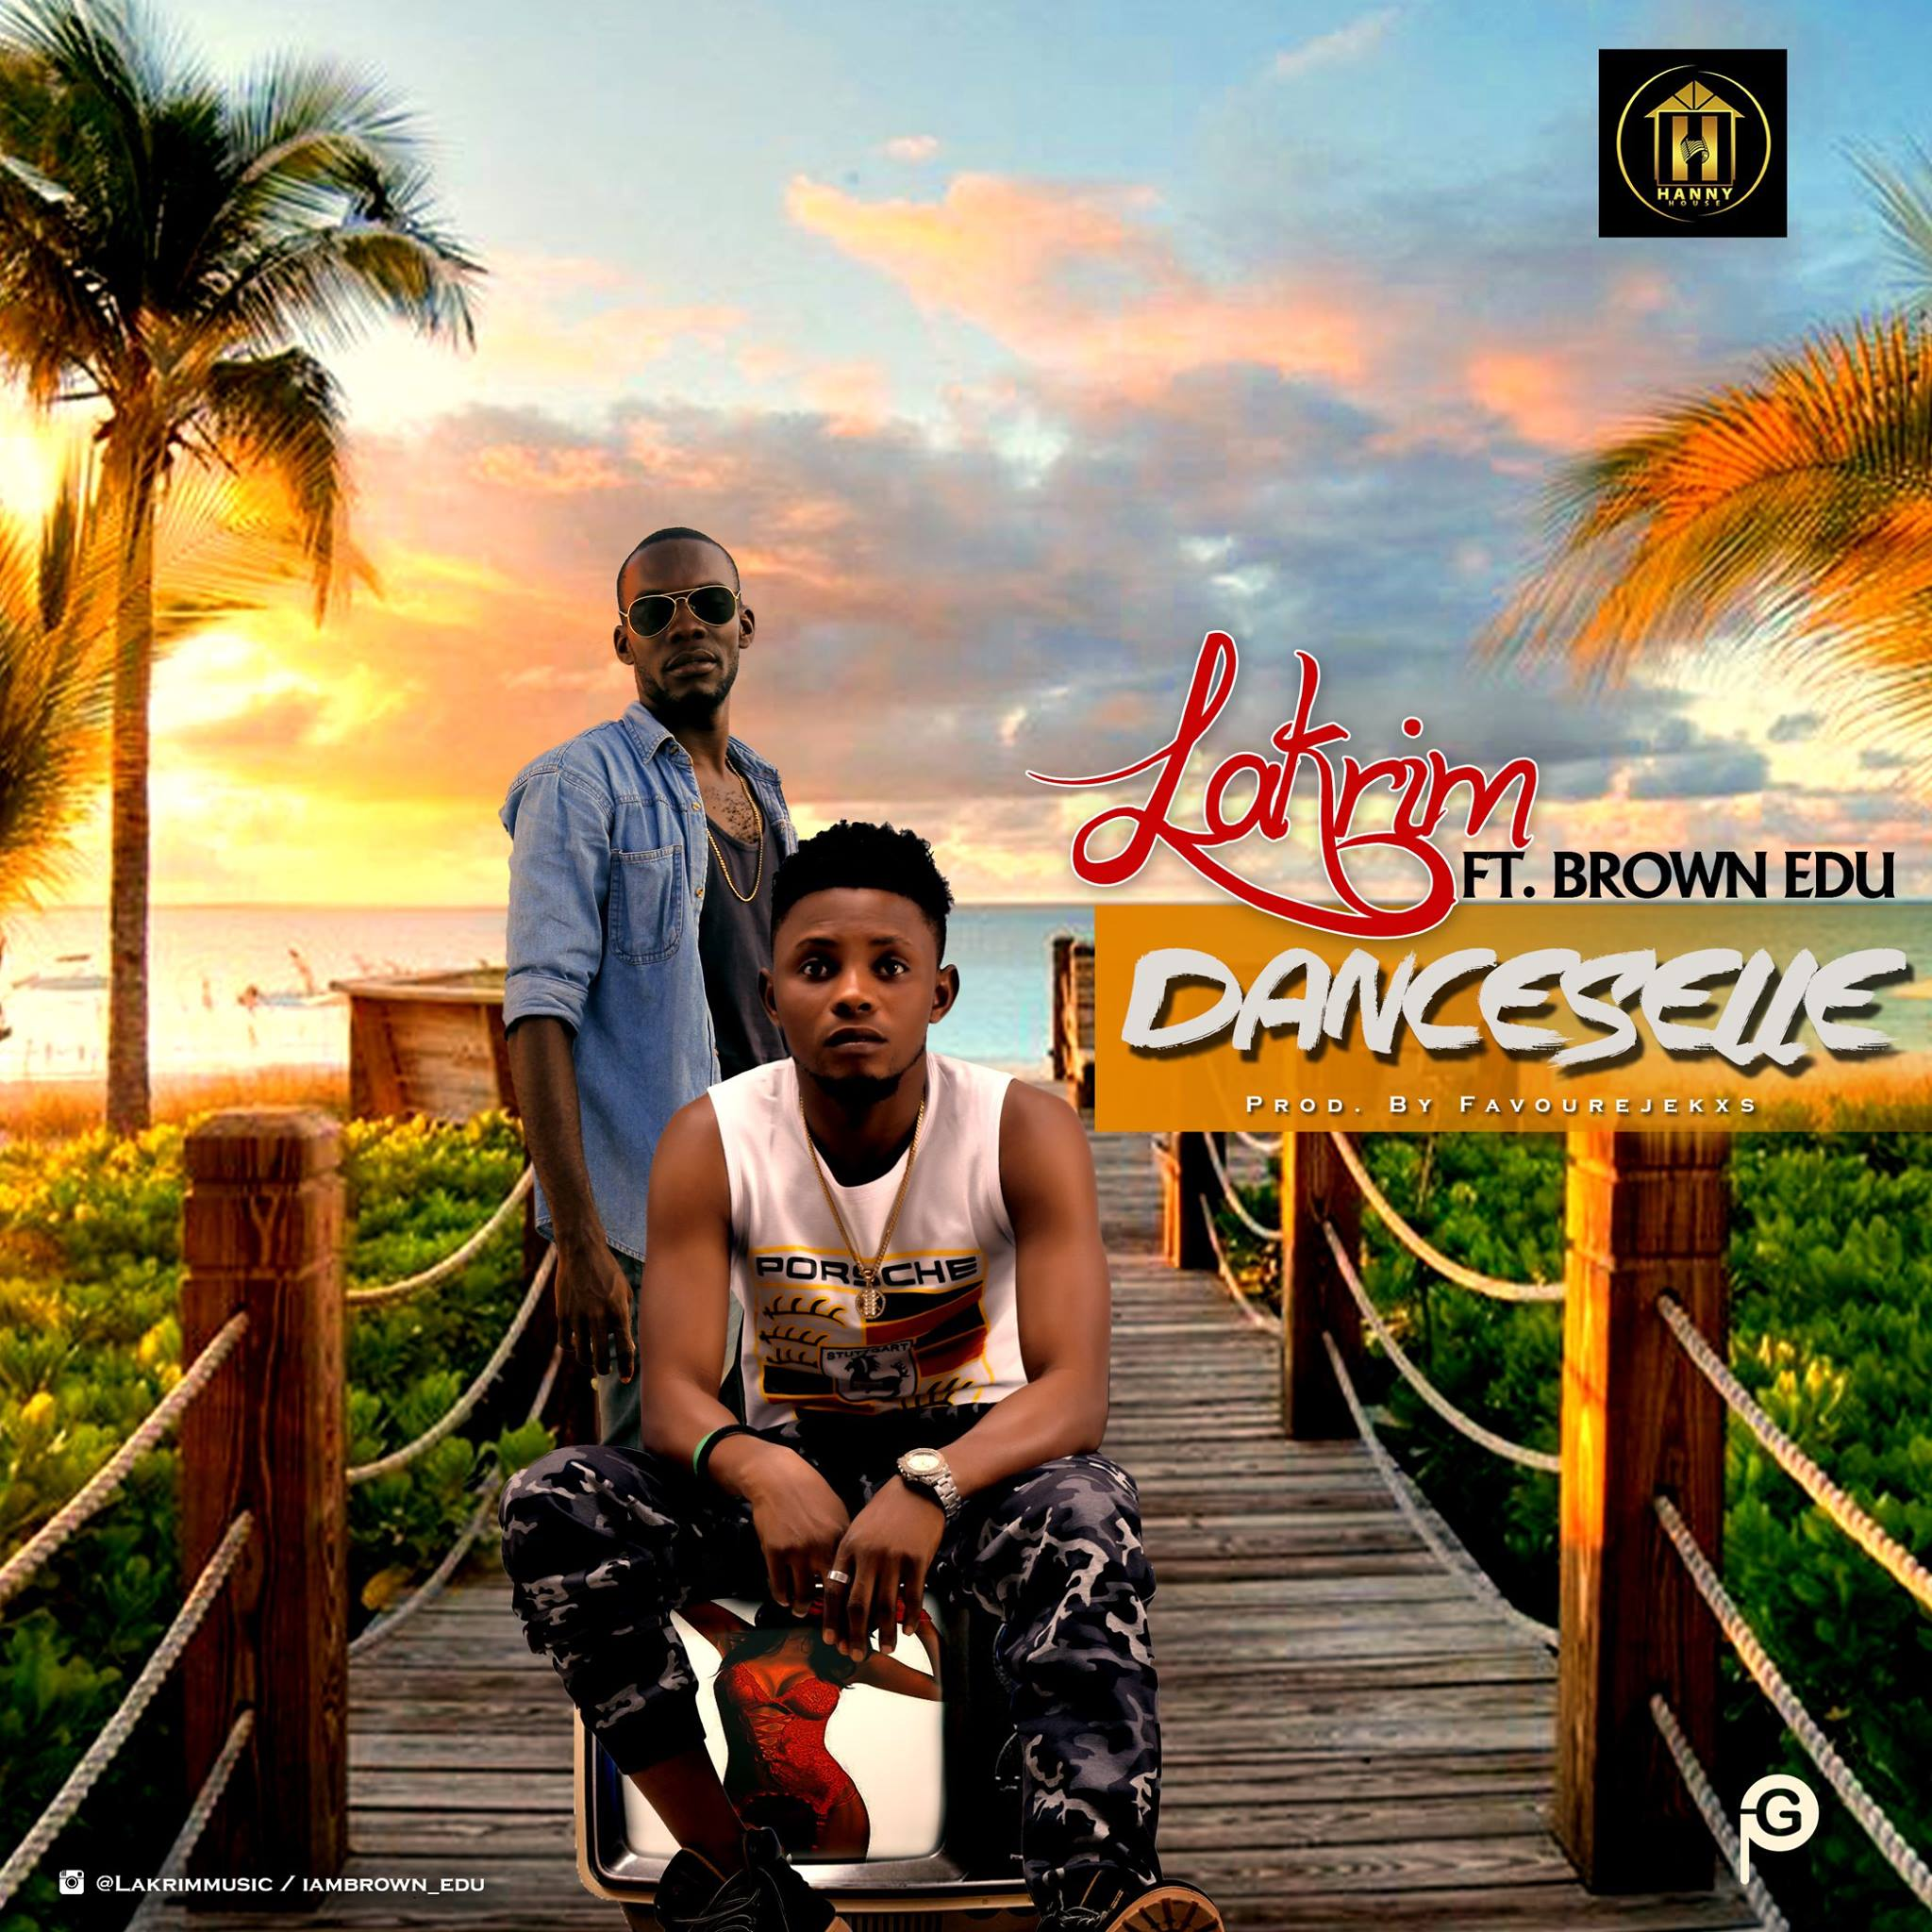 Lakrim – Dance Selle ft. Brown Edu cc. @lakrimmusic